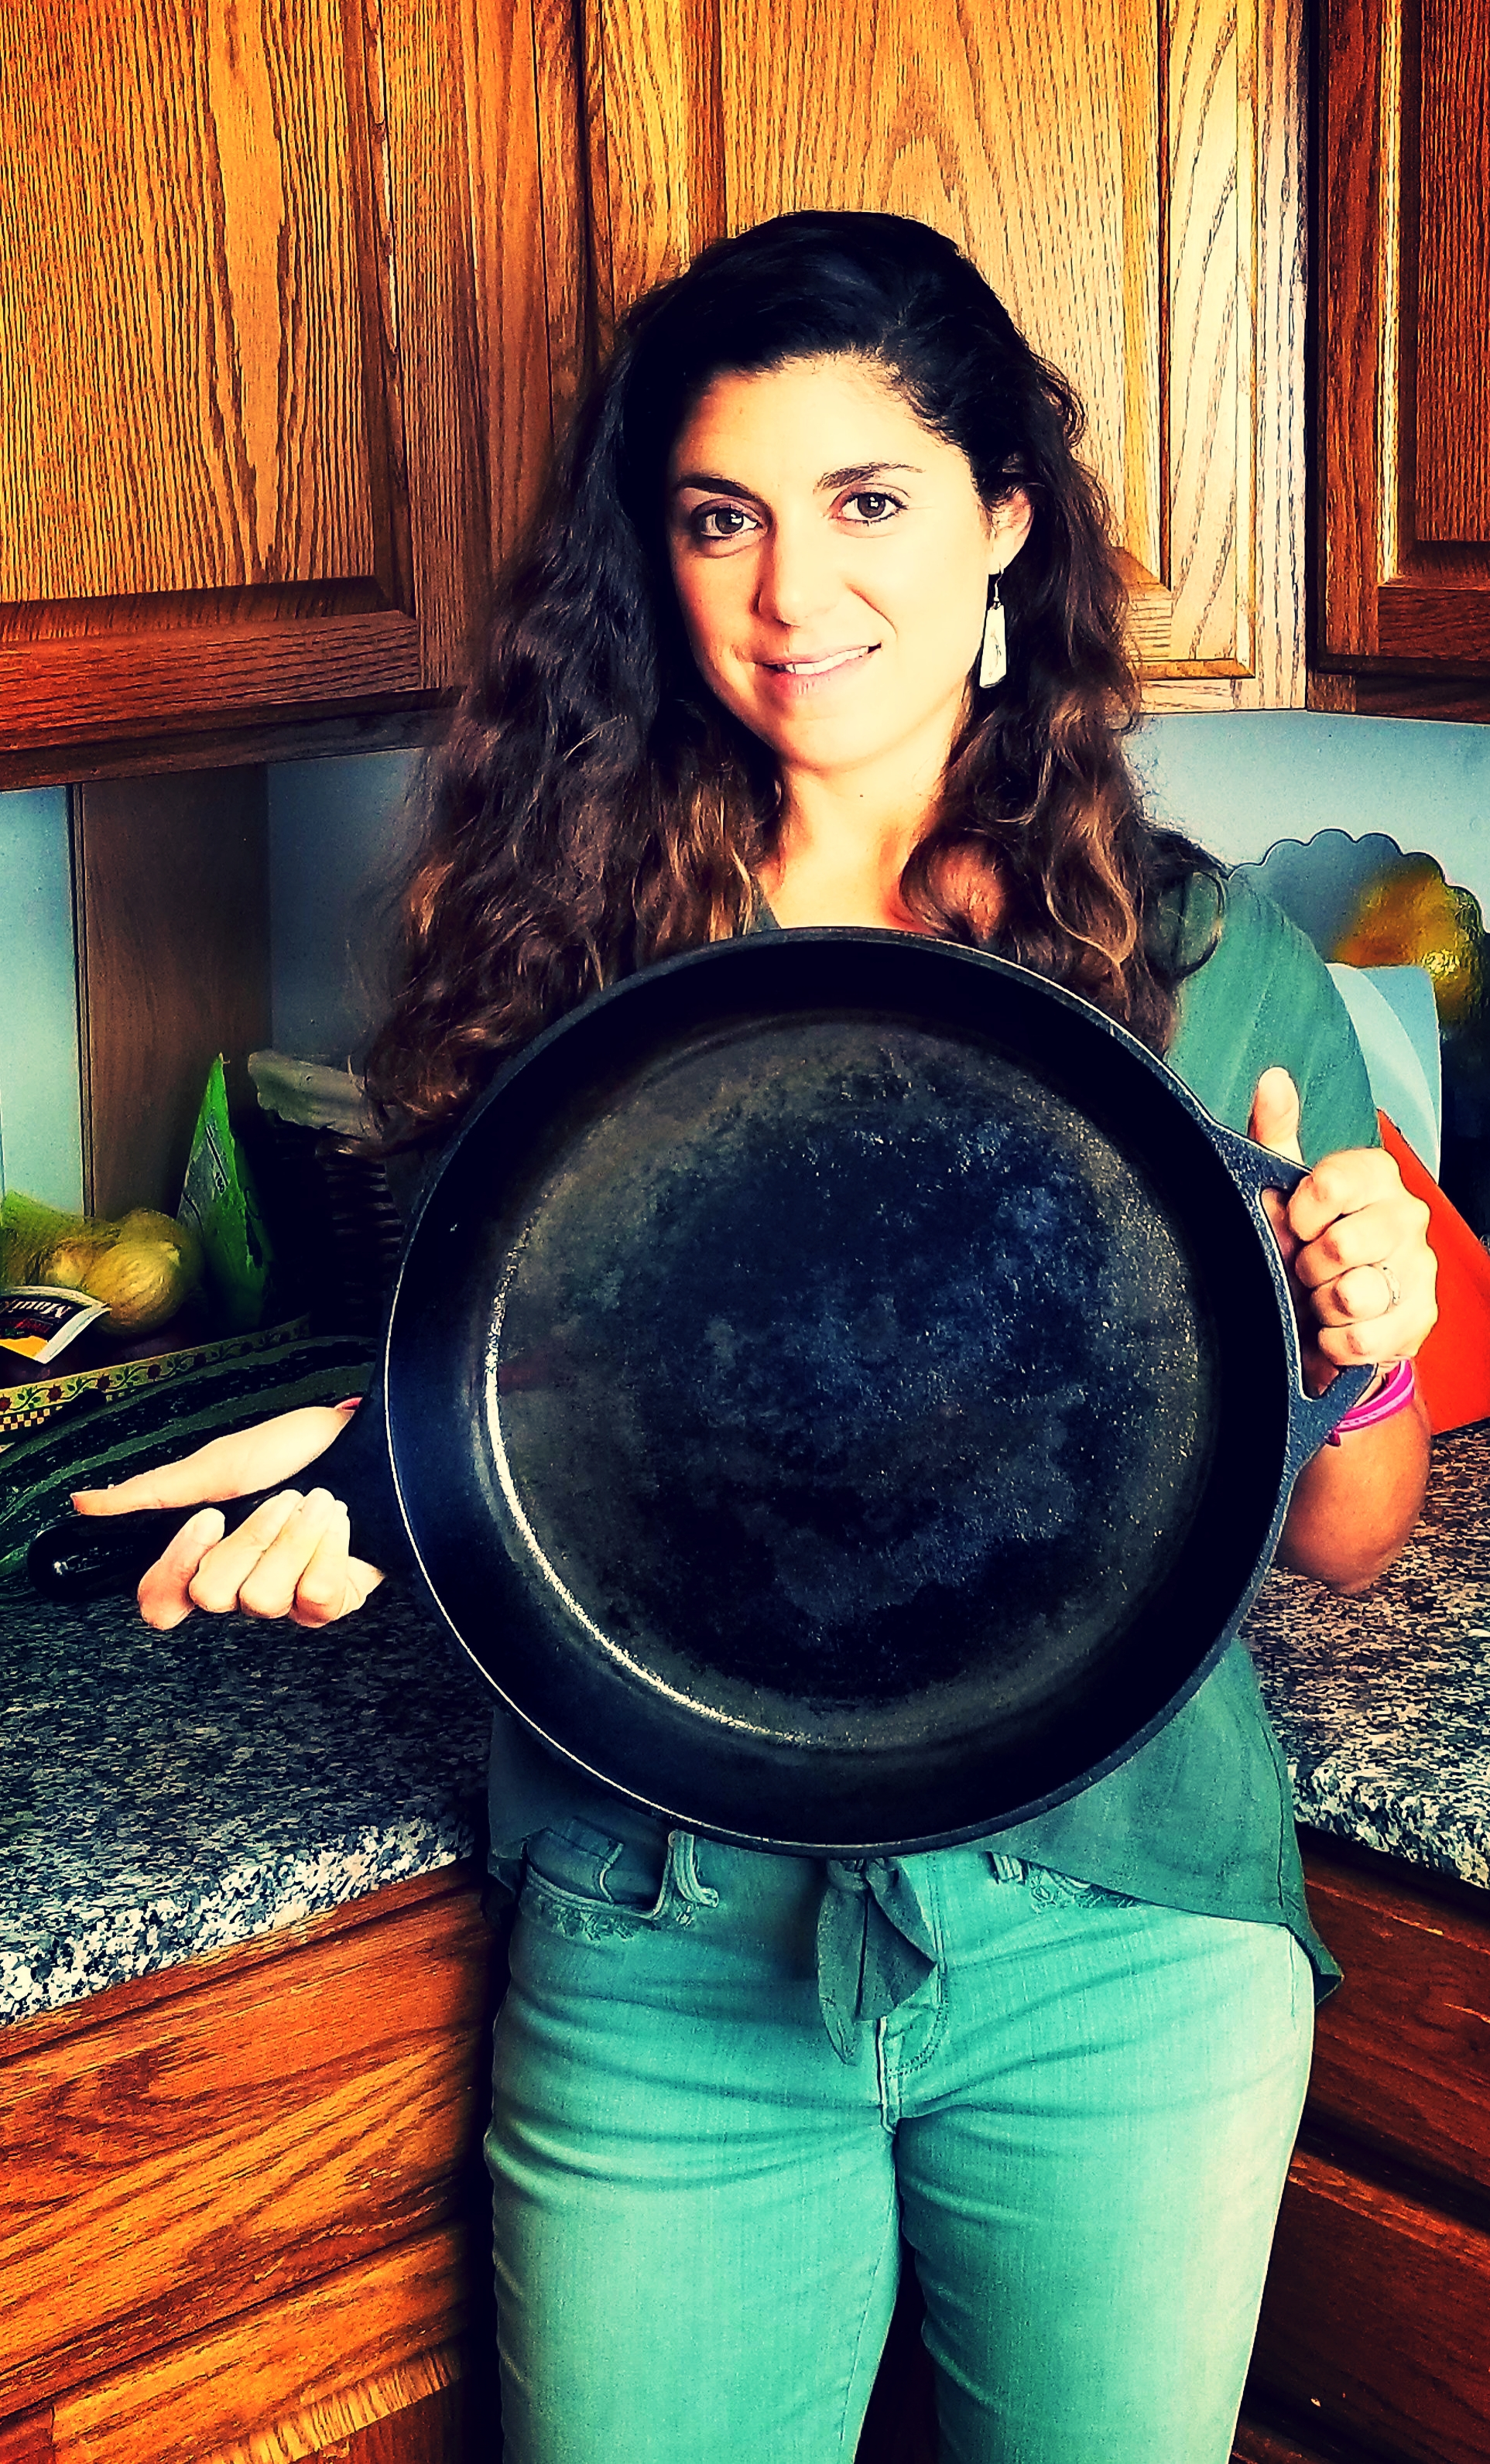 I love to cook with cast iron! I have skillets in 4 sizes (the one I'm holding here is the 14-inch skillet).